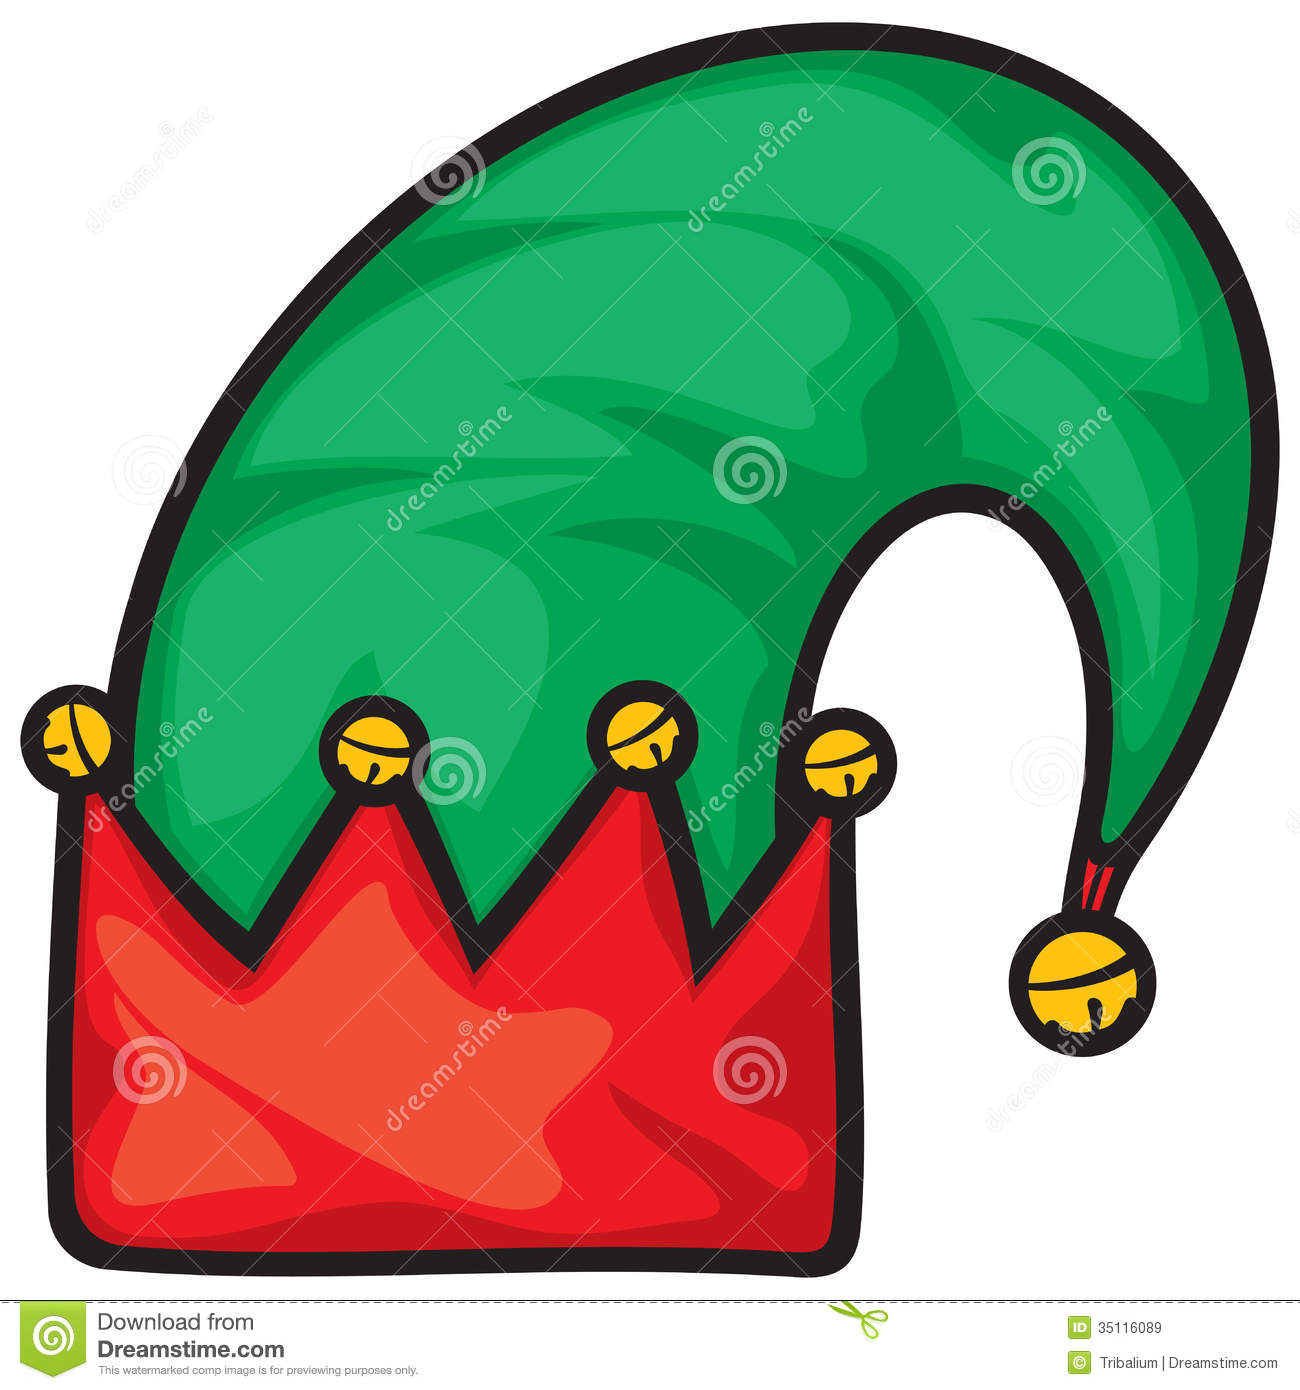 Elf Hat Royalty Free Stock Images - Image: 35116089